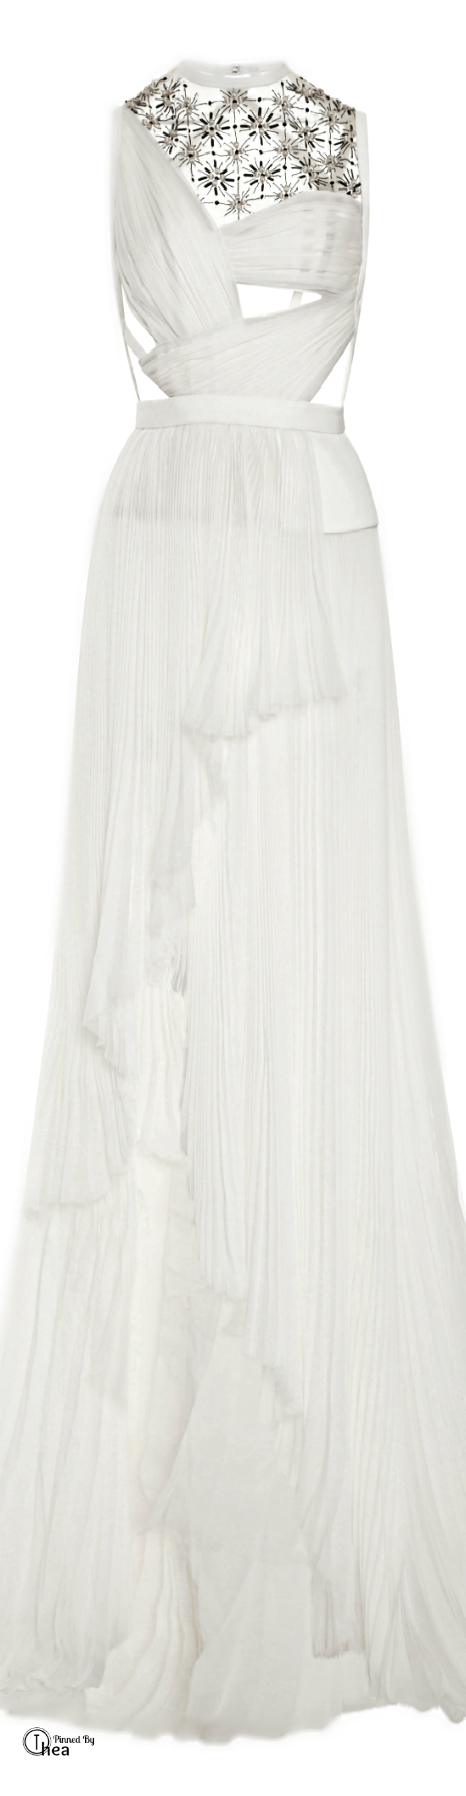 J mendel fw sleeveless gown with embroidered tulle insert